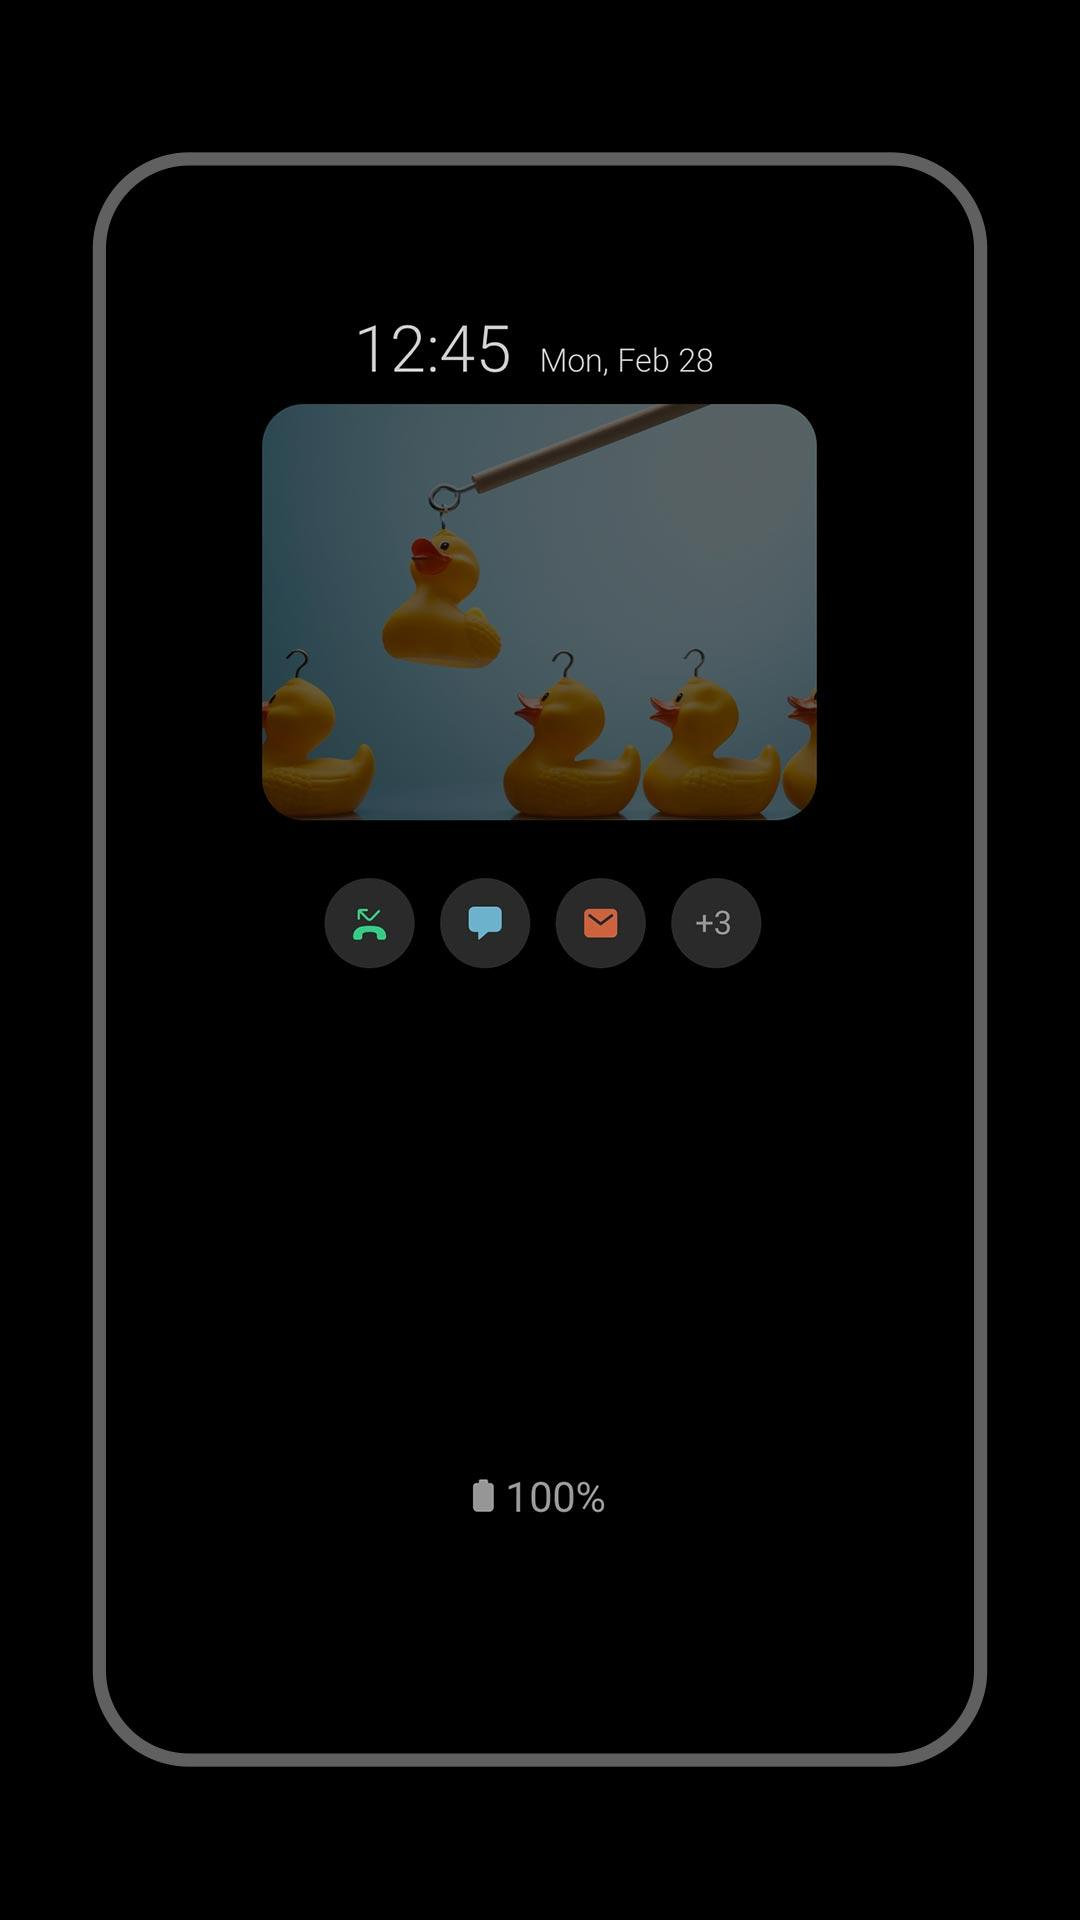 Samsung Always On Display For Android Apk Download